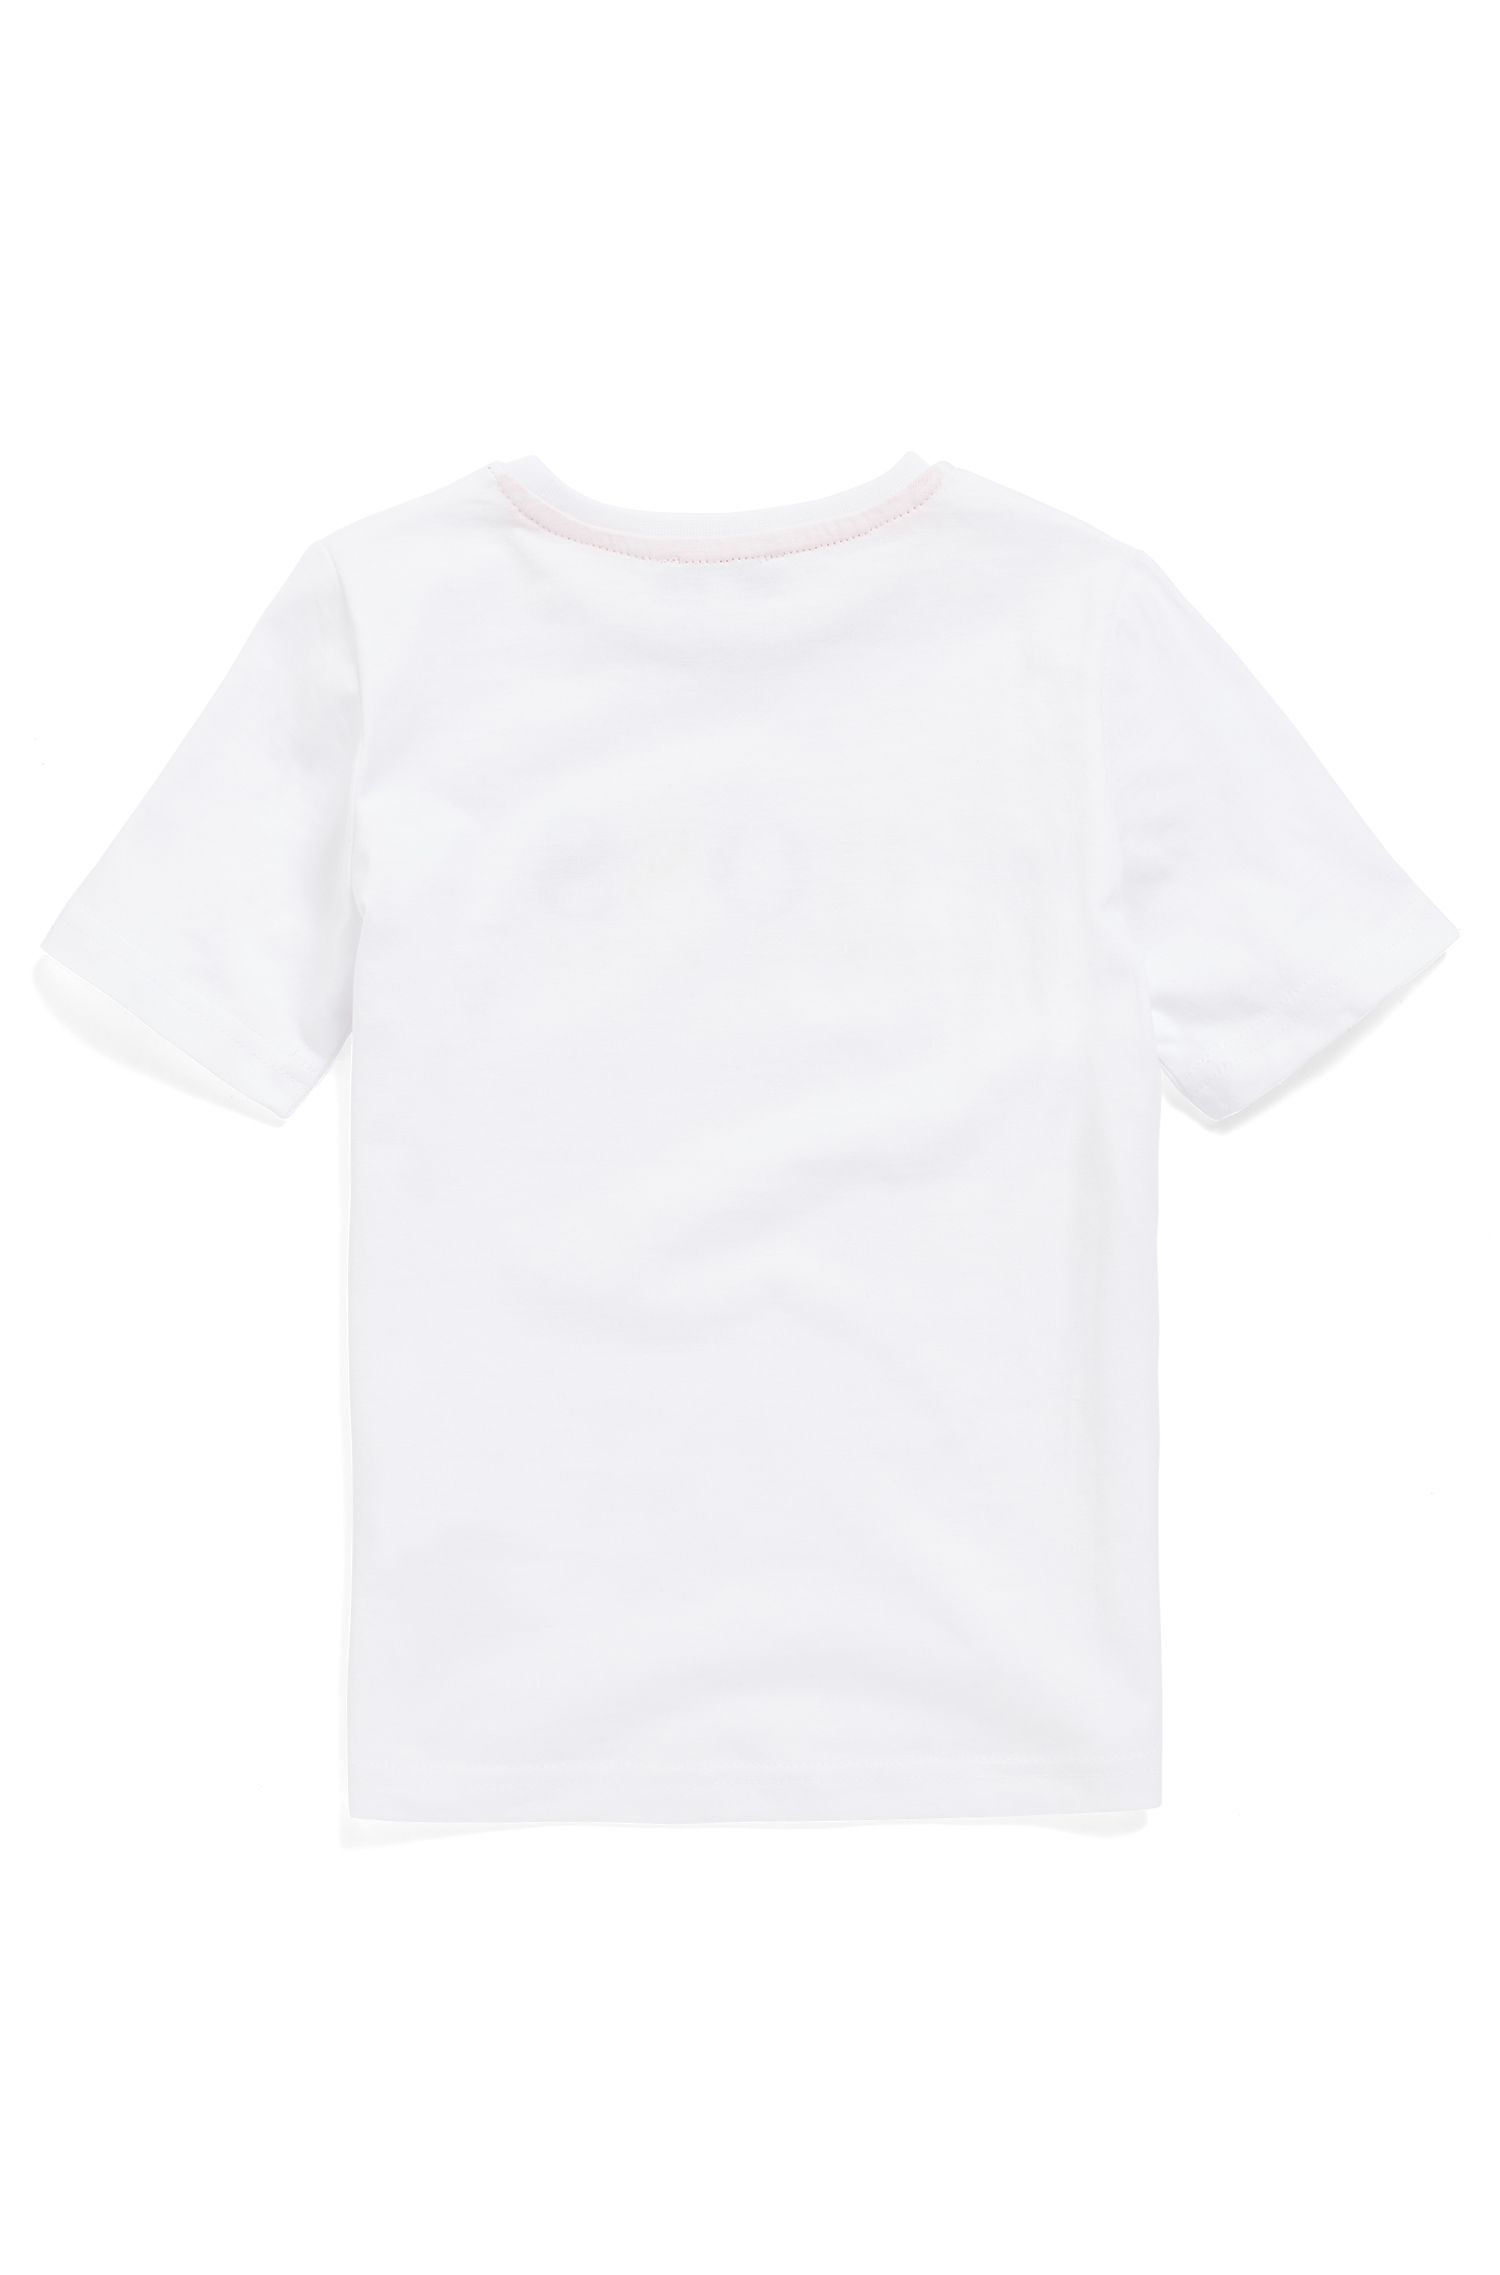 Kids' T-shirt in pure cotton with multicoloured logo print, White